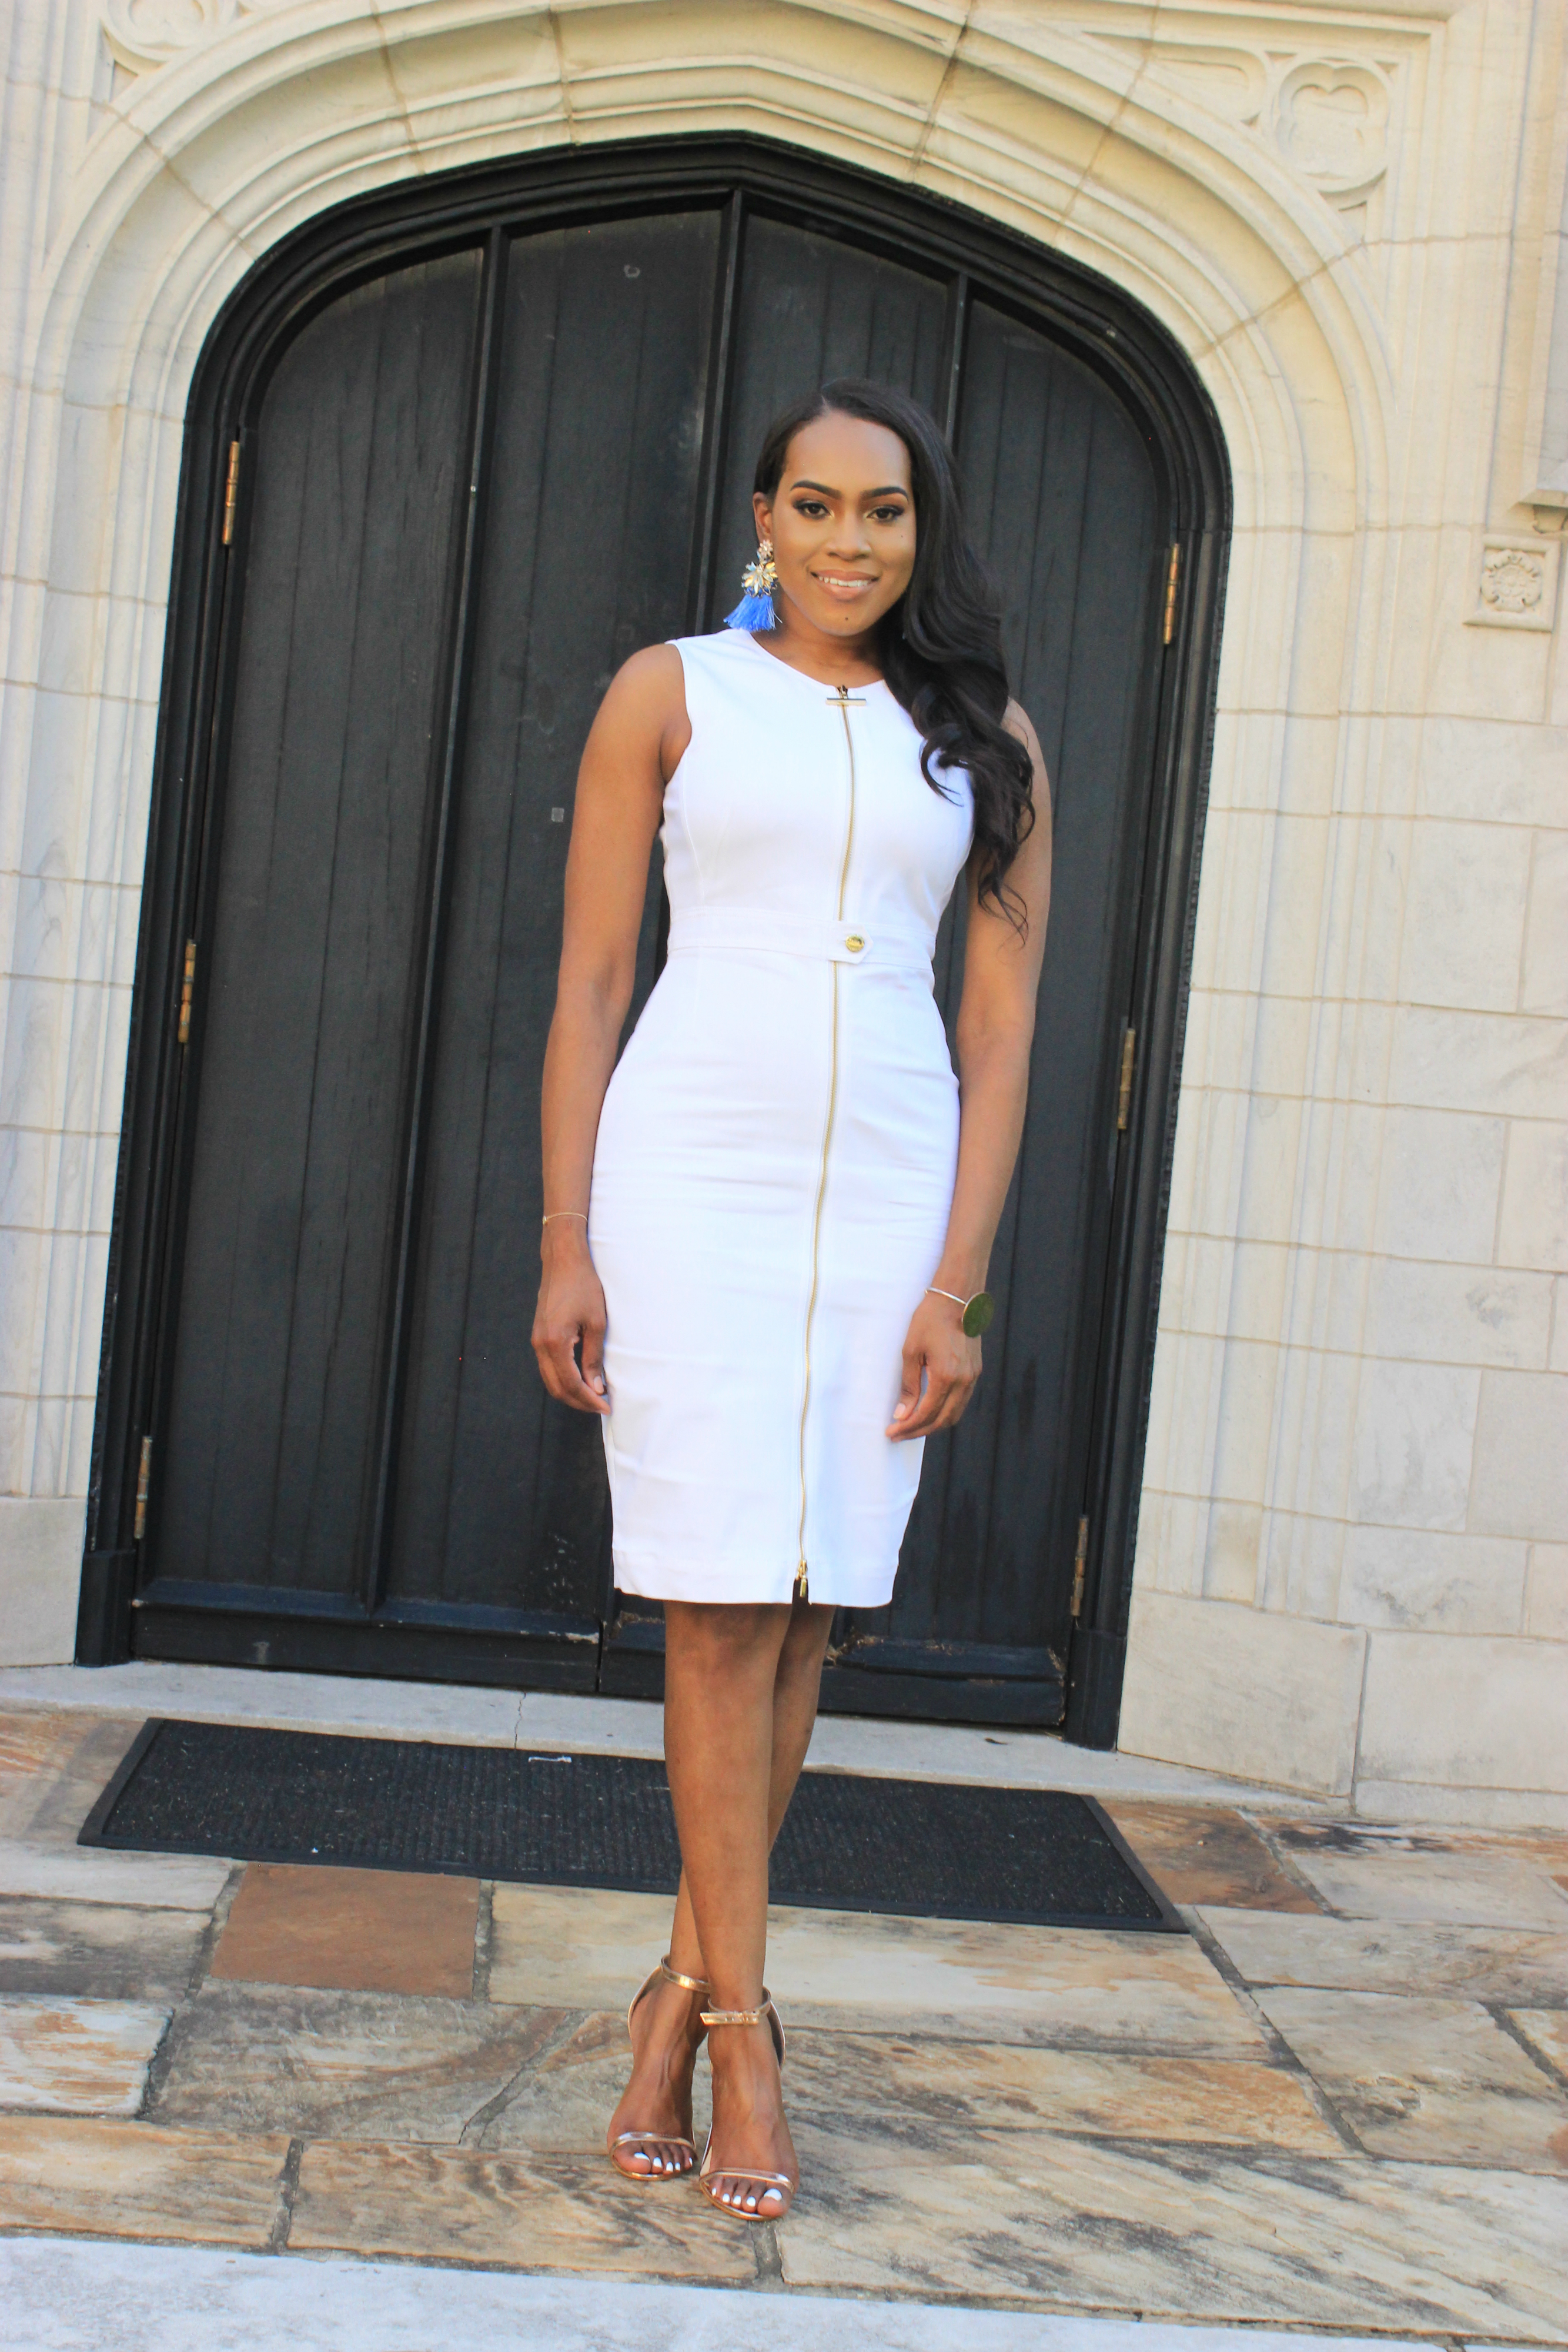 Style-Files-White-Sheath-Calvin-Klein-Dress-with-front-exposed-gold-zipper-sky-blue-fringe-earrings-truffle-collection-barely-there-heel-sandal-rose-gold-how-to-wear-white-to-work-birmingham-top-blogger-oohlalablog-1